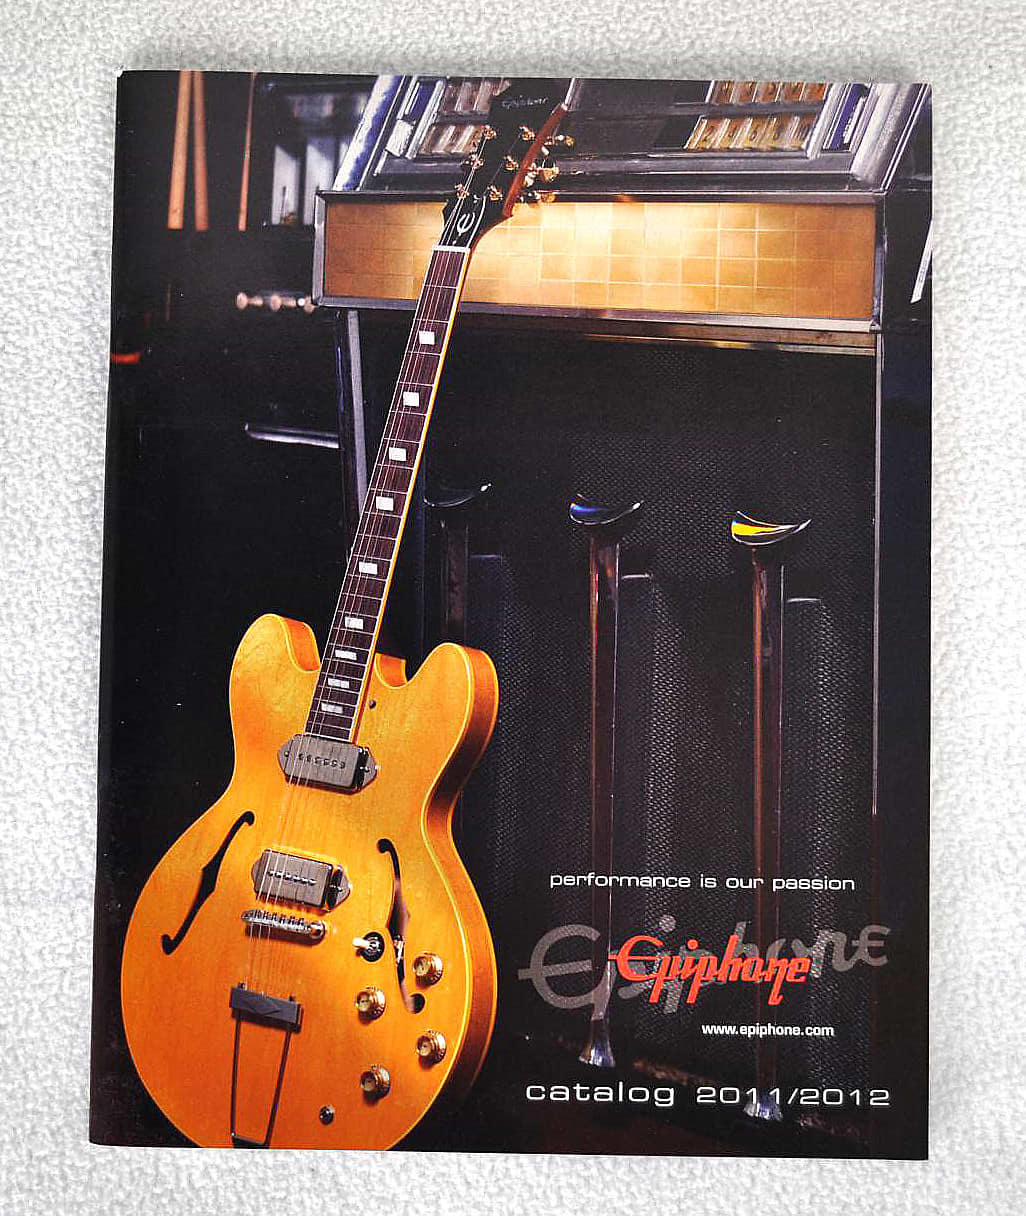 New Official Epiphone Guitar 2011-2012 Catalog! Full color : Reverb